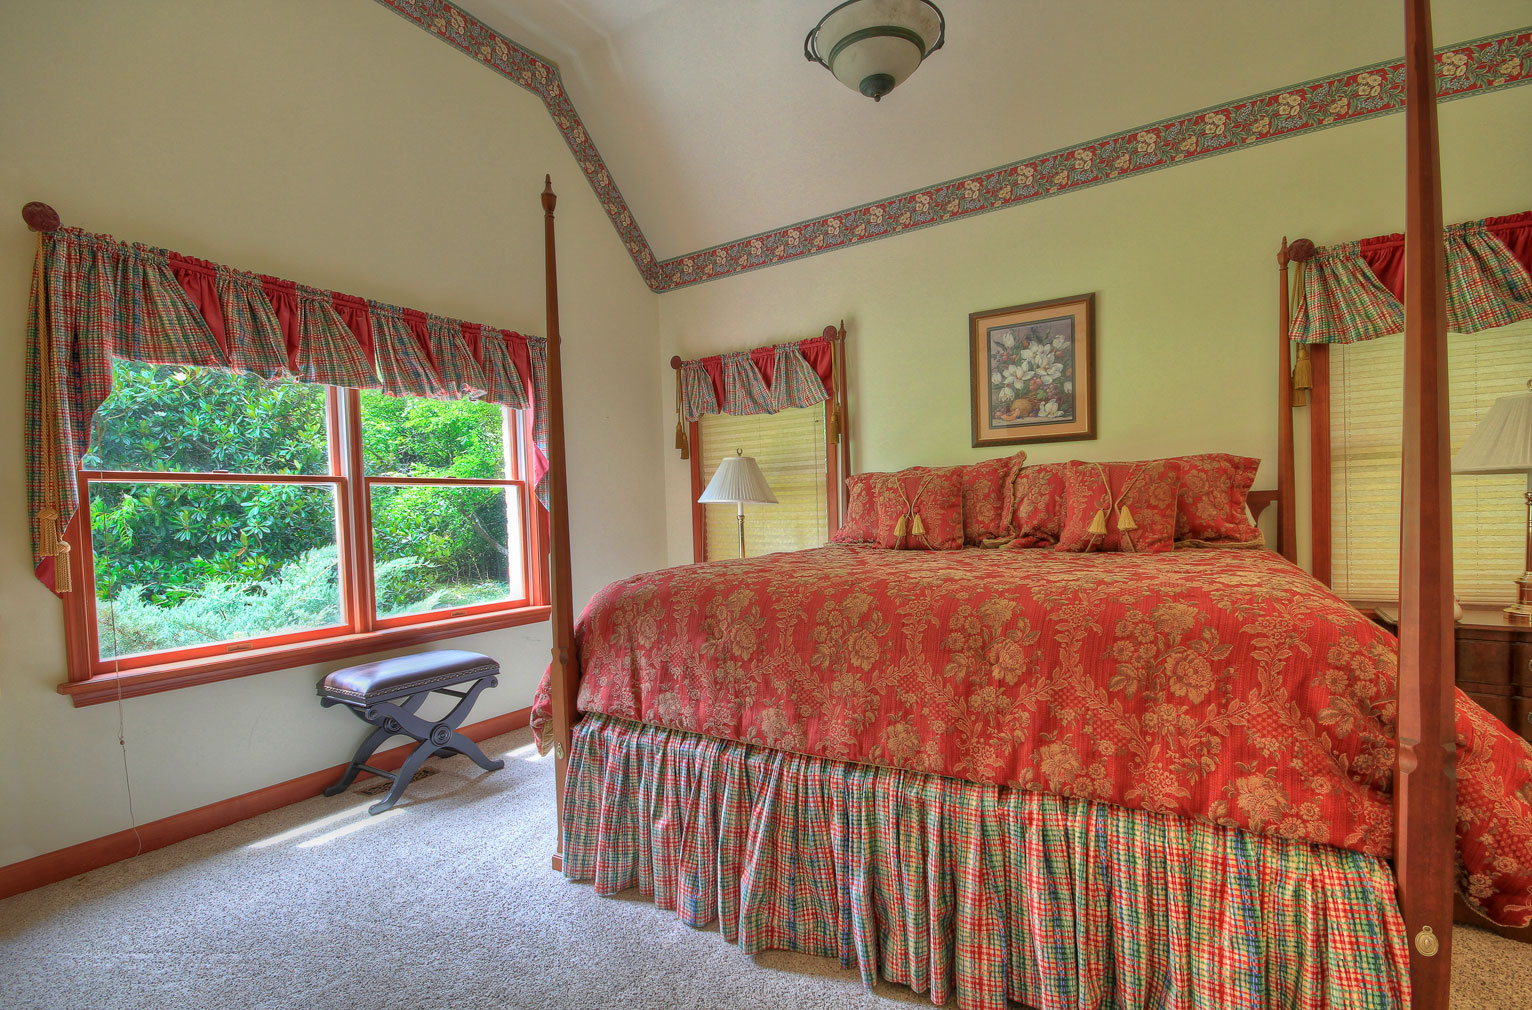 eden room oxford md combsberry combsberry inn bed breakfast oxford md. Black Bedroom Furniture Sets. Home Design Ideas